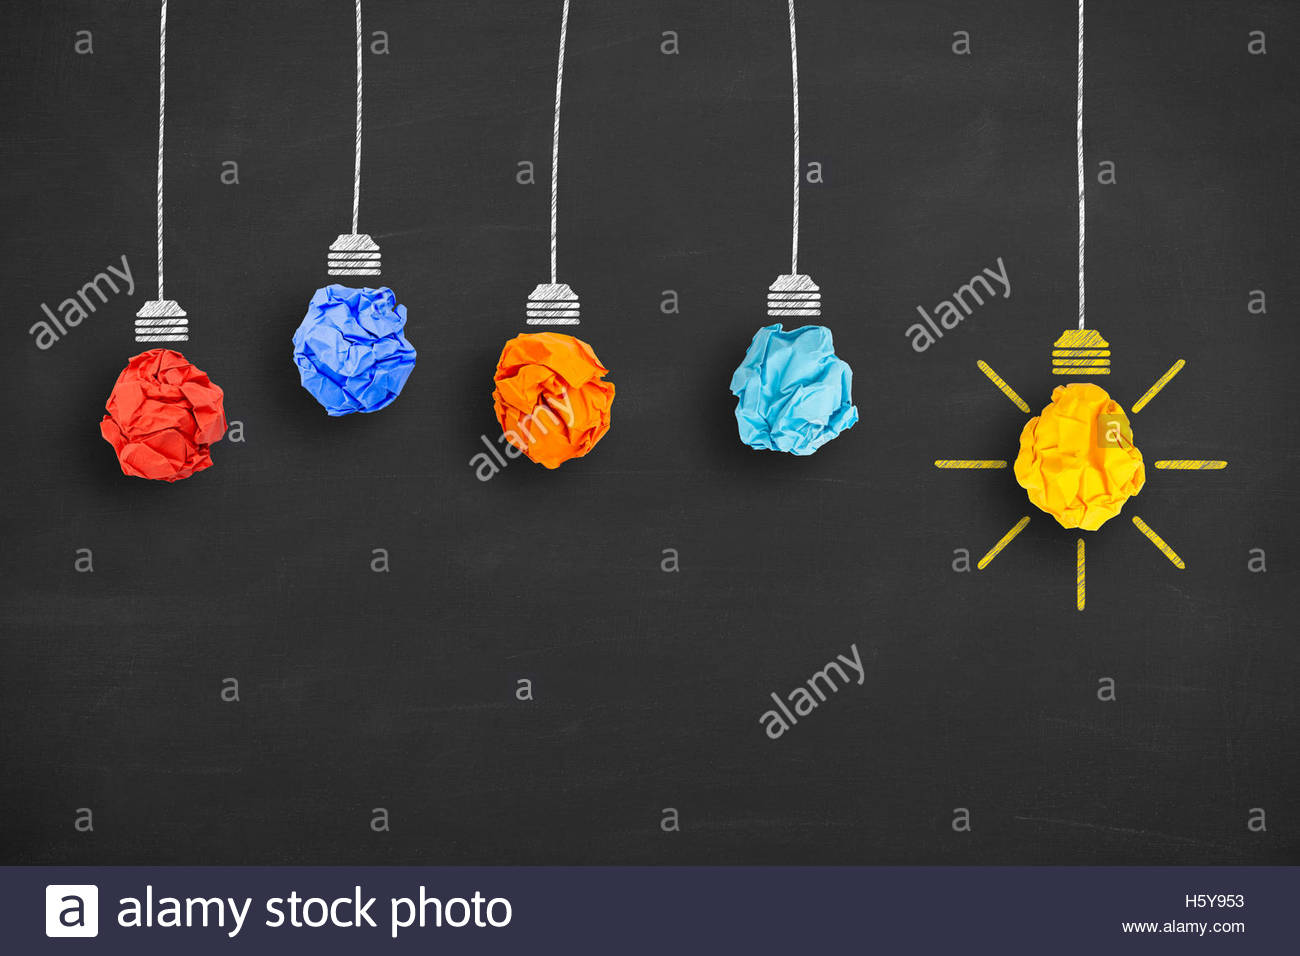 Crumpled Paper Light Bulb Idea Concept on Blackboard - Stock Image